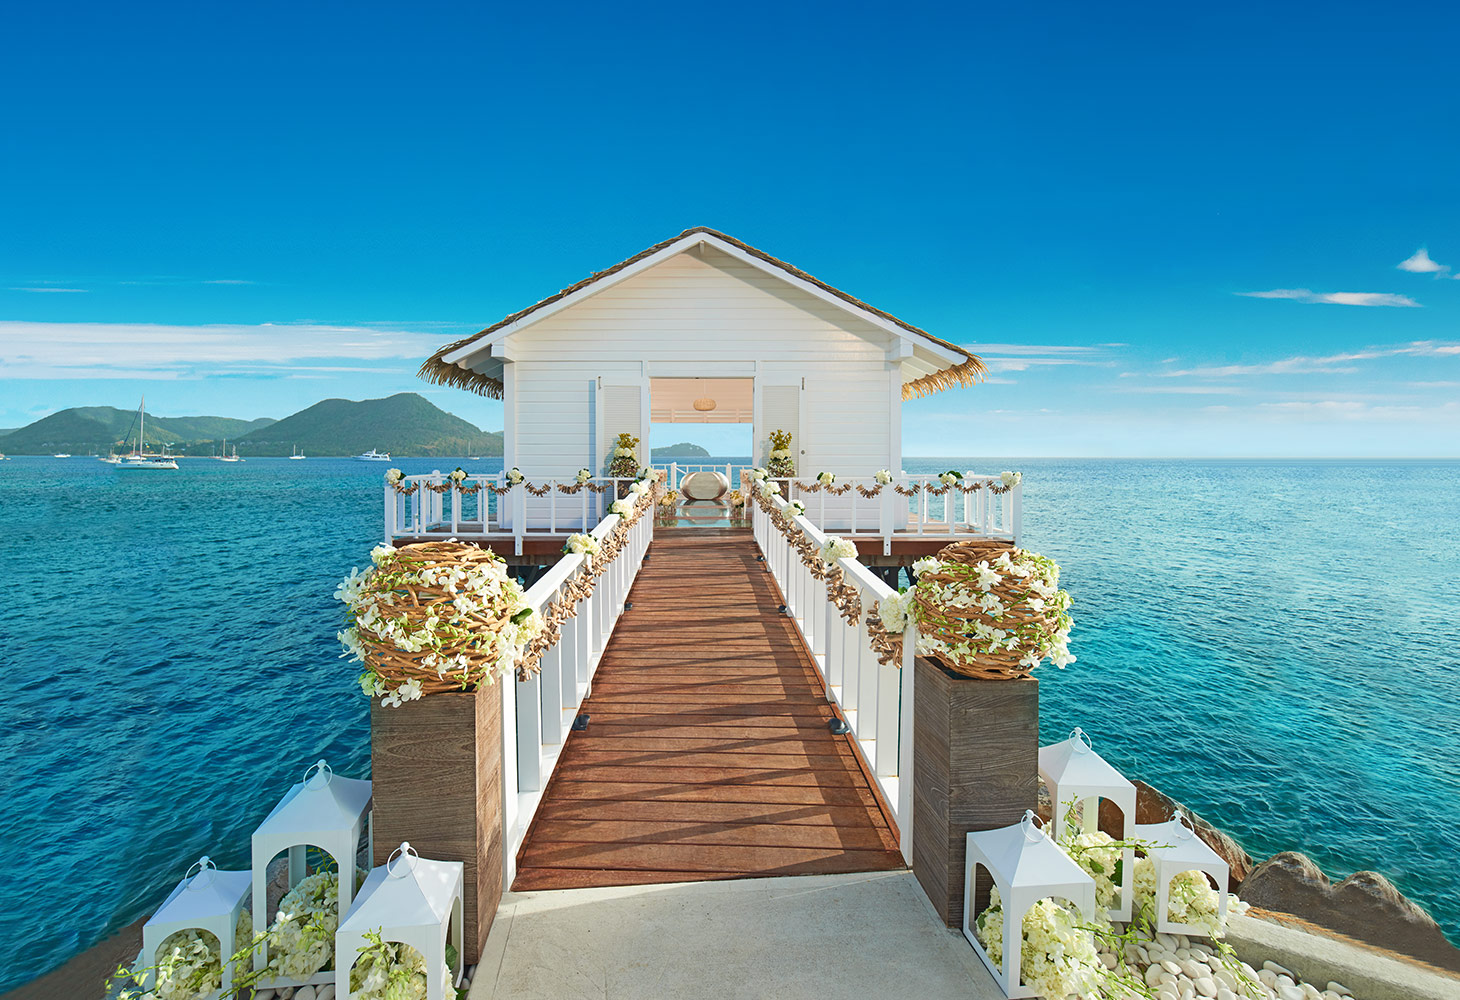 overwater wedding chapel with aisle decorated with flowers over blue ocean water